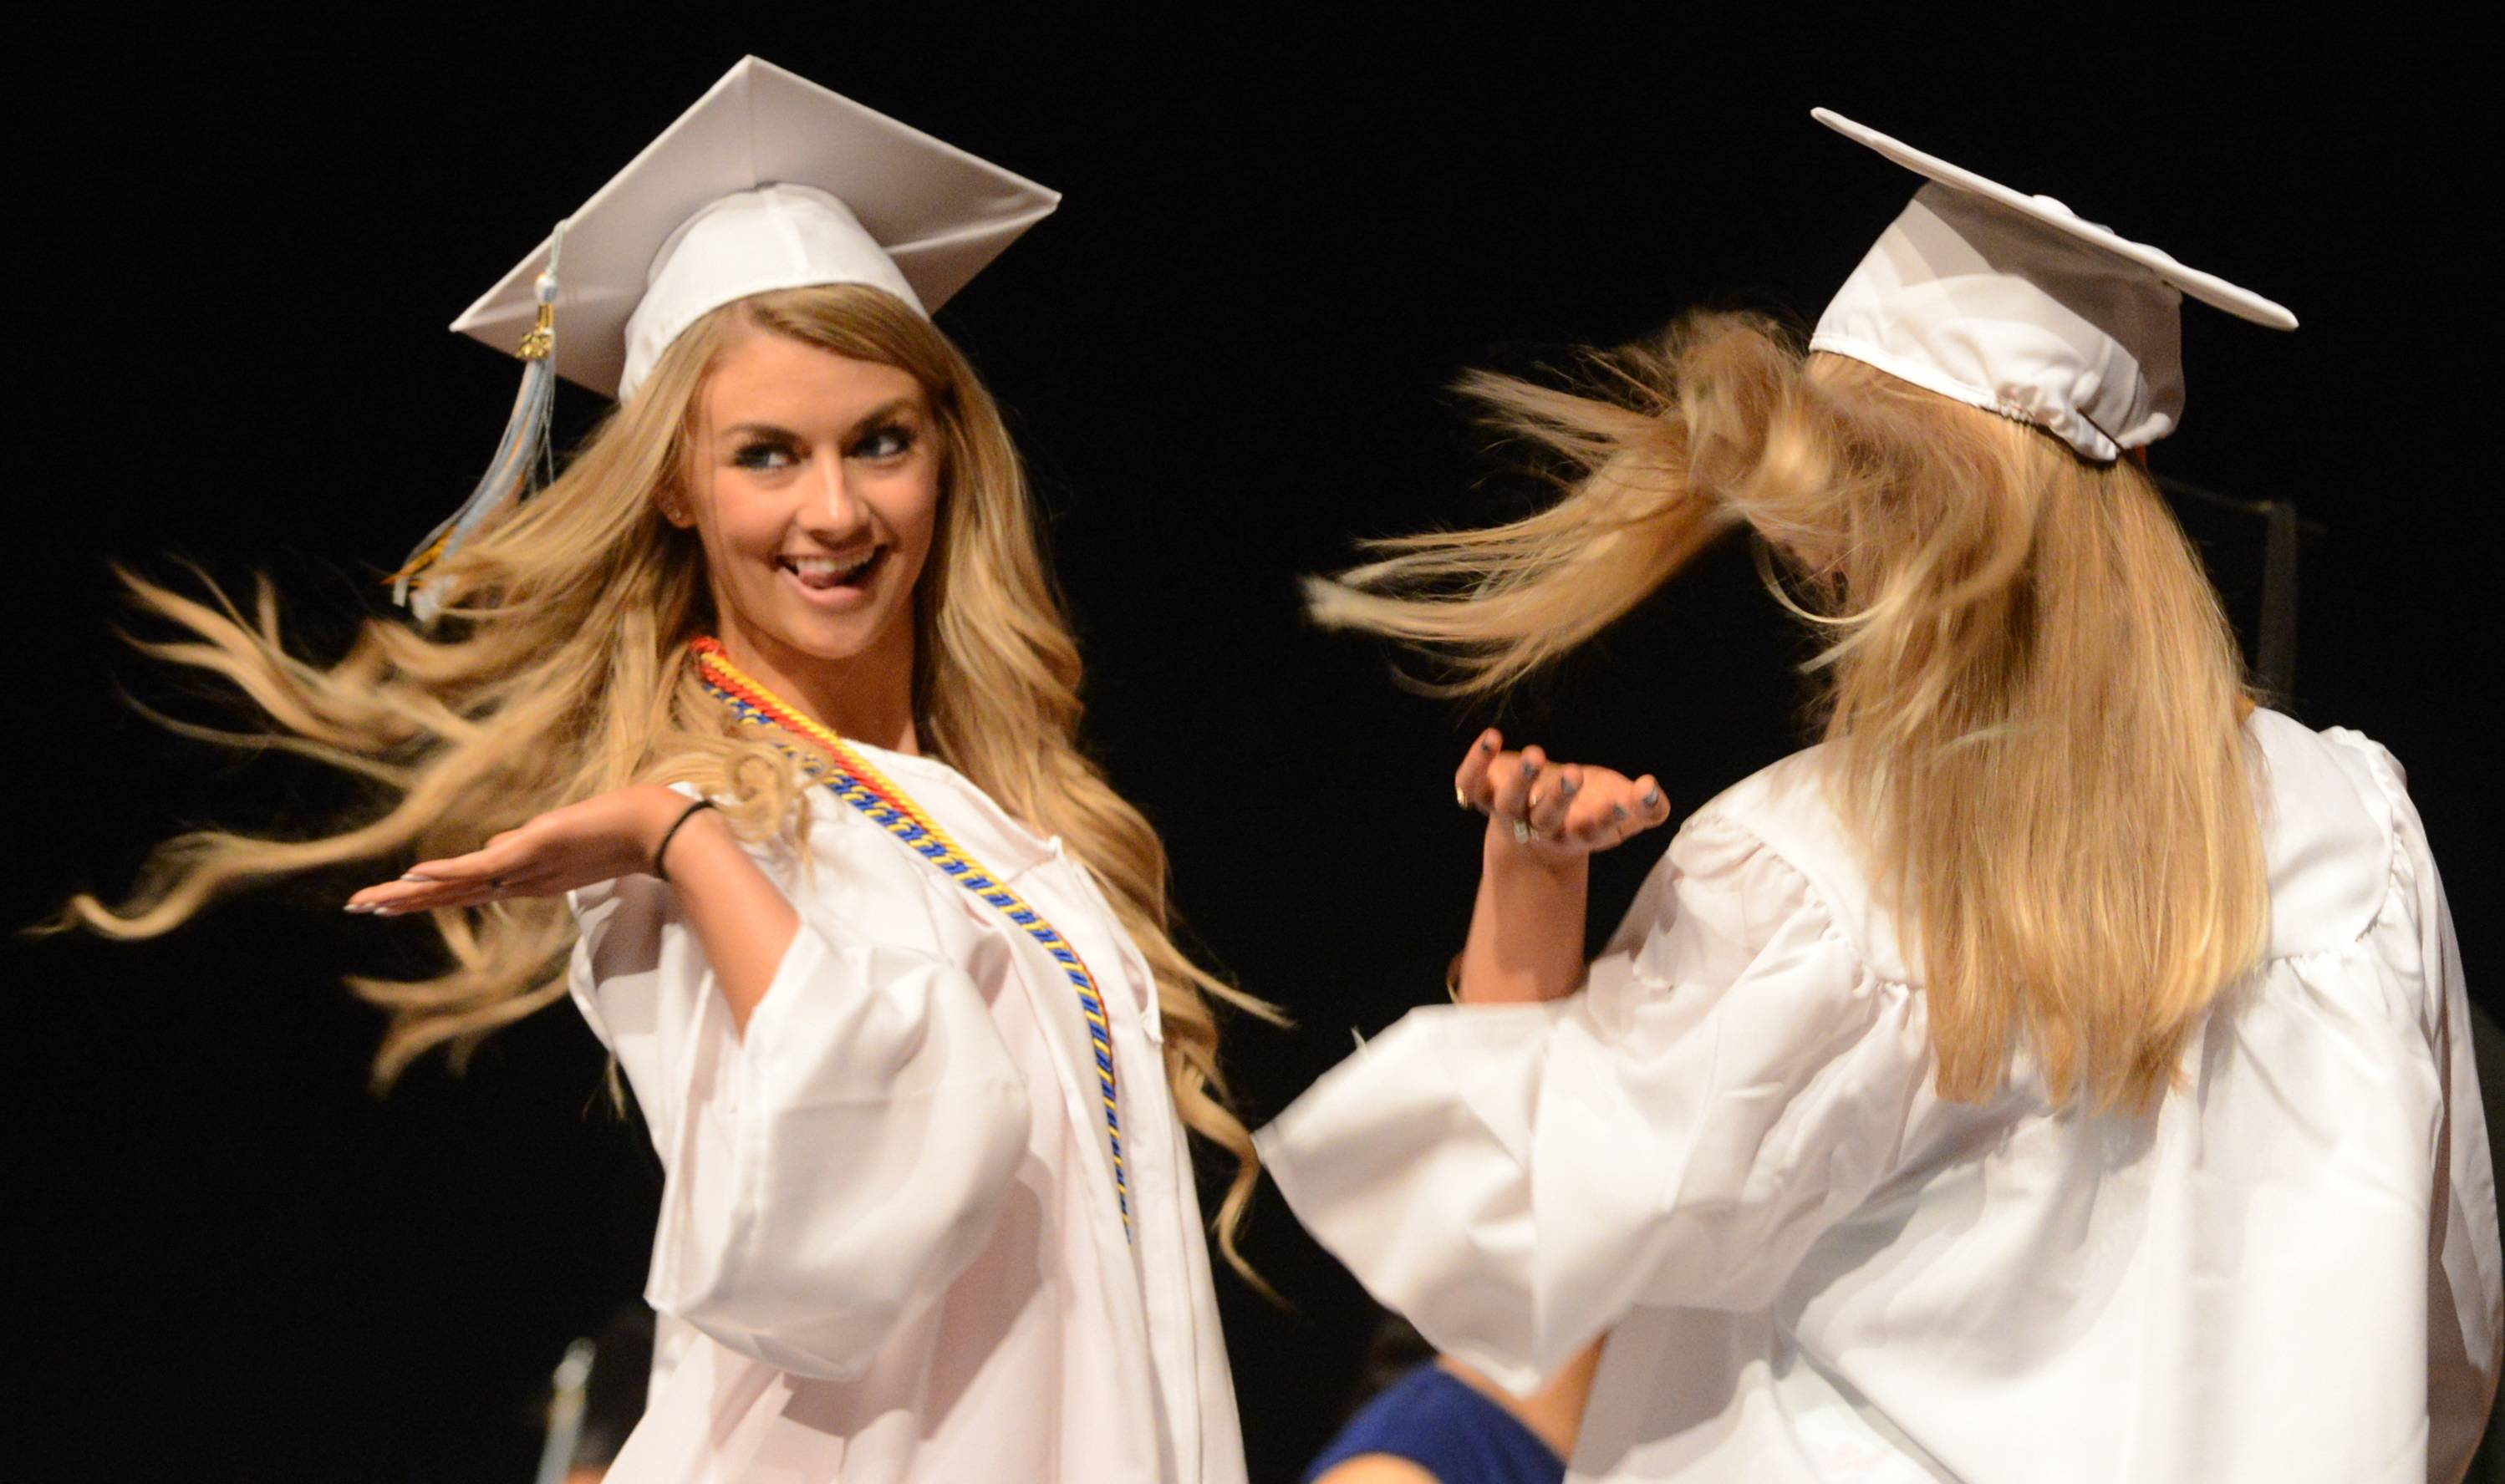 Maine West High School held its graduation ceremony on Saturday, June 6, at the Rosemont Theatre.